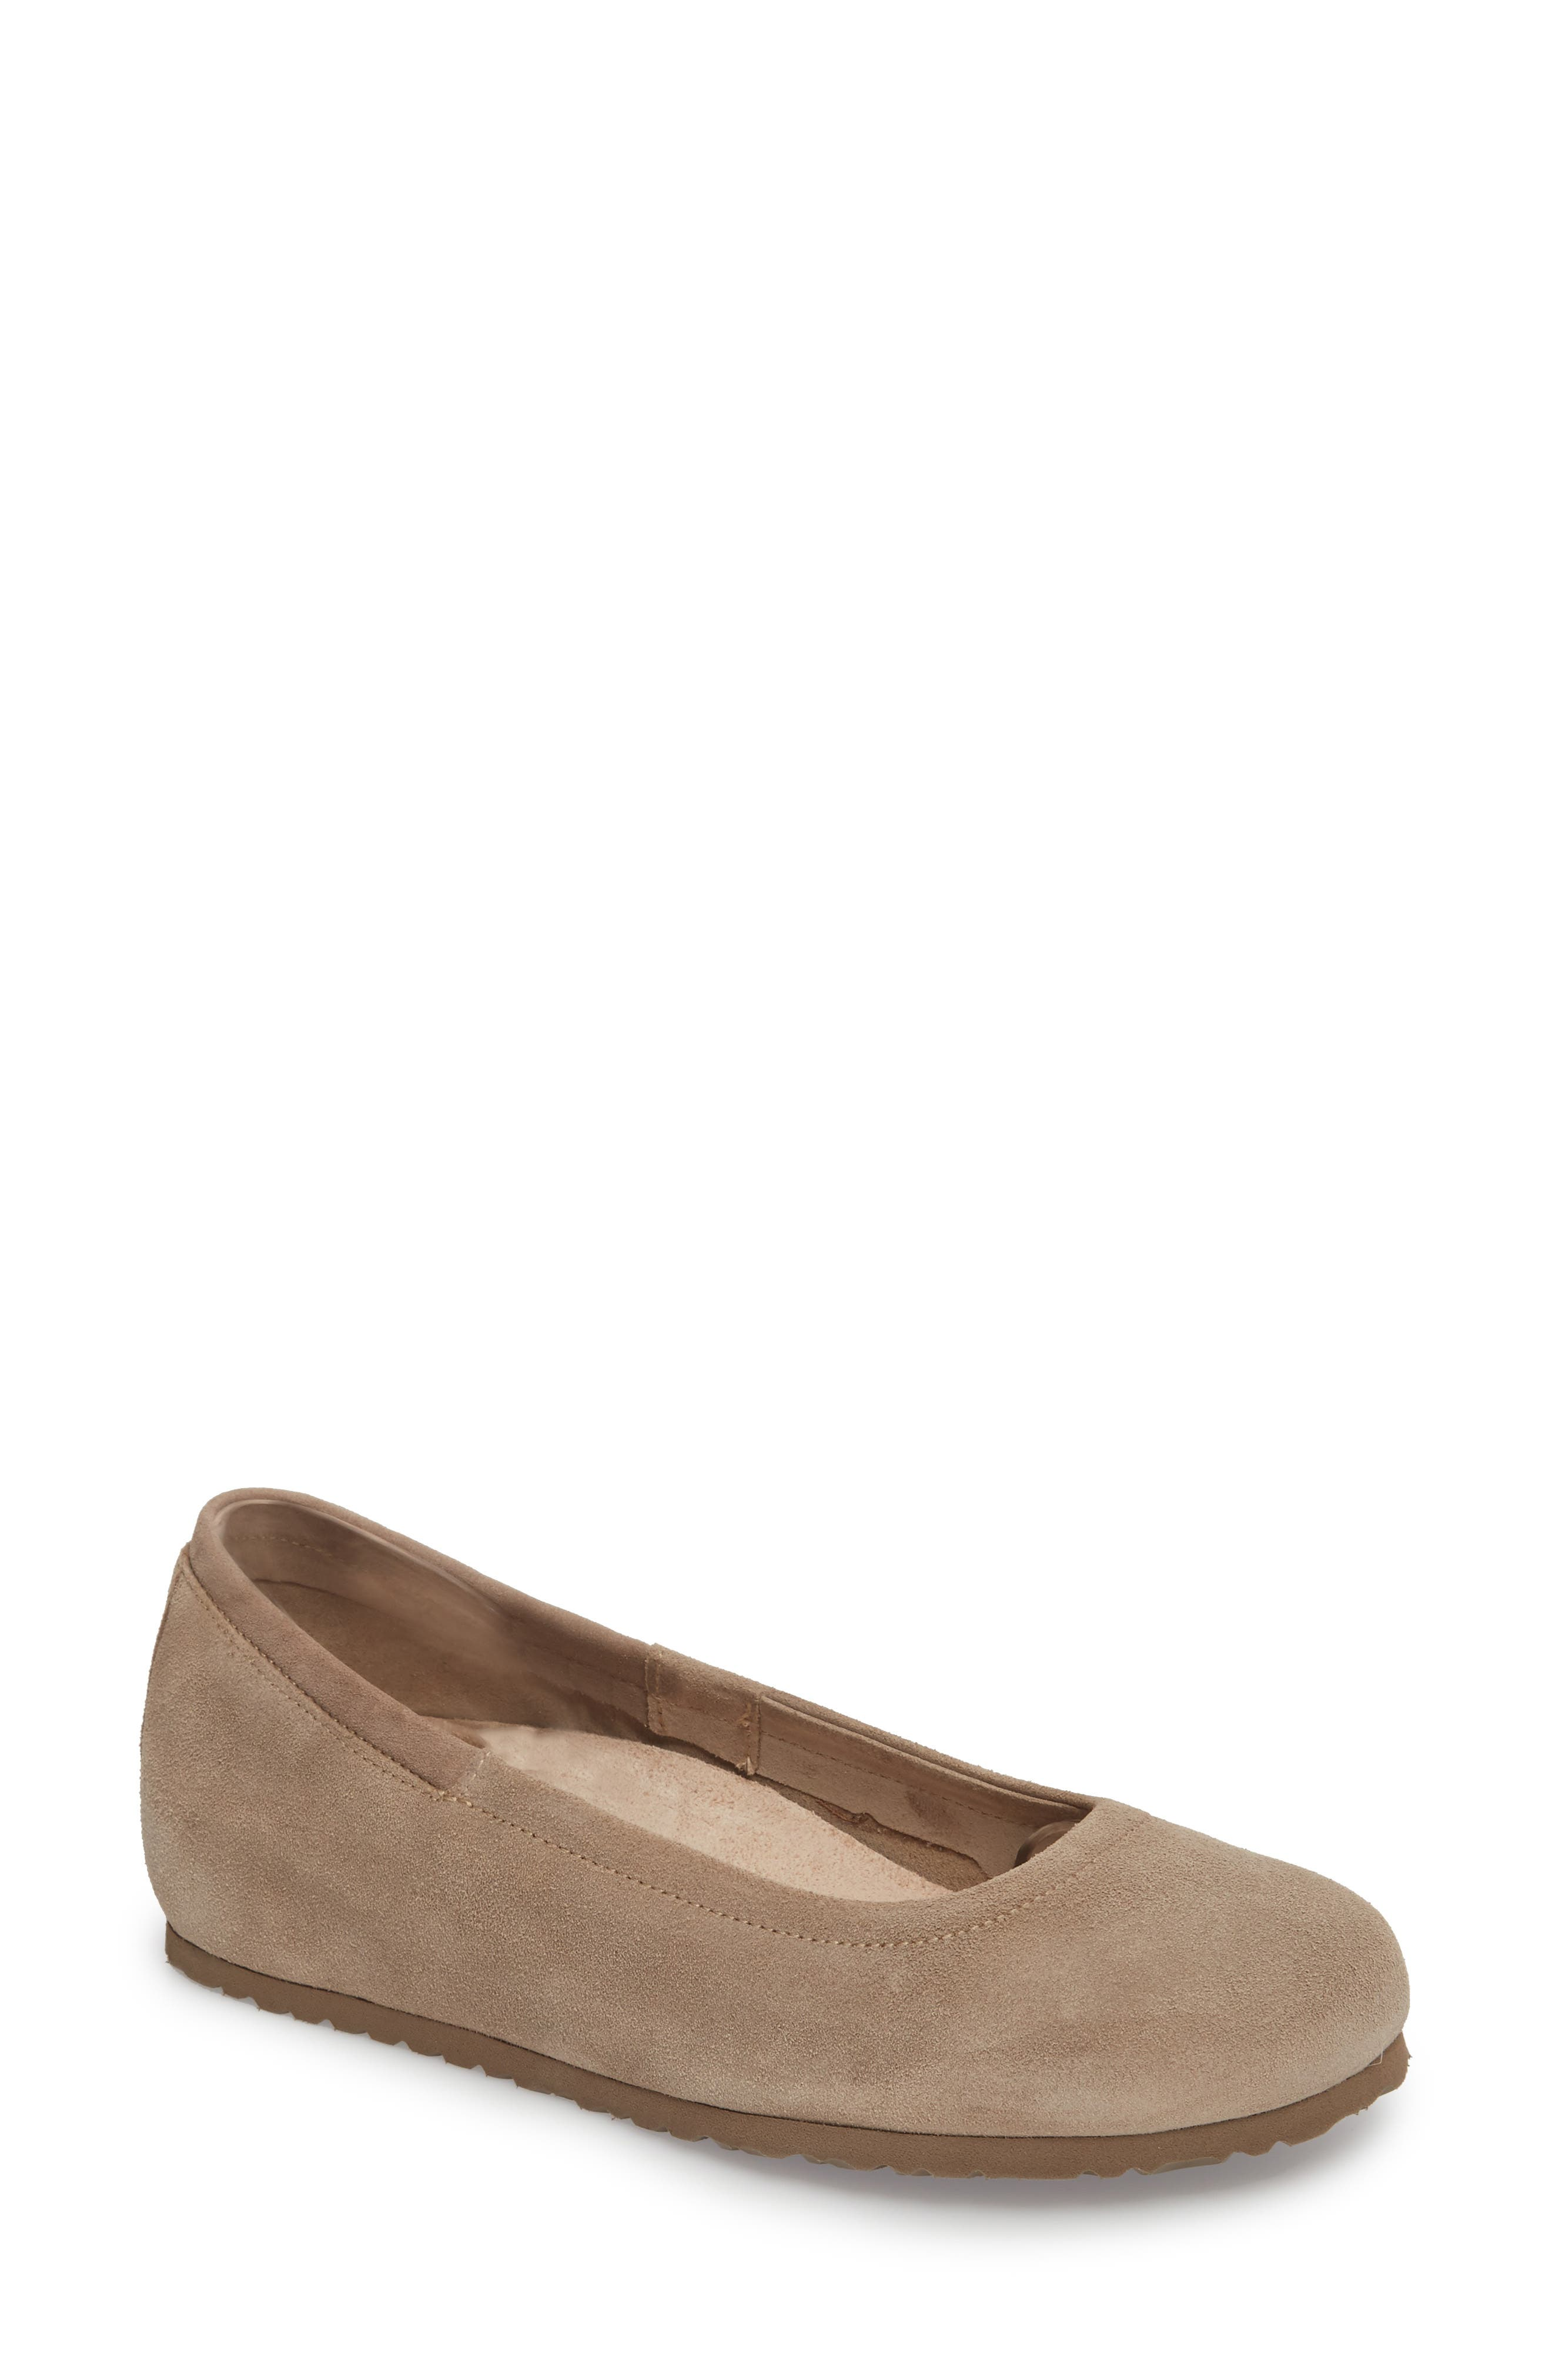 Celina Ballet Flat in Taupe Suede